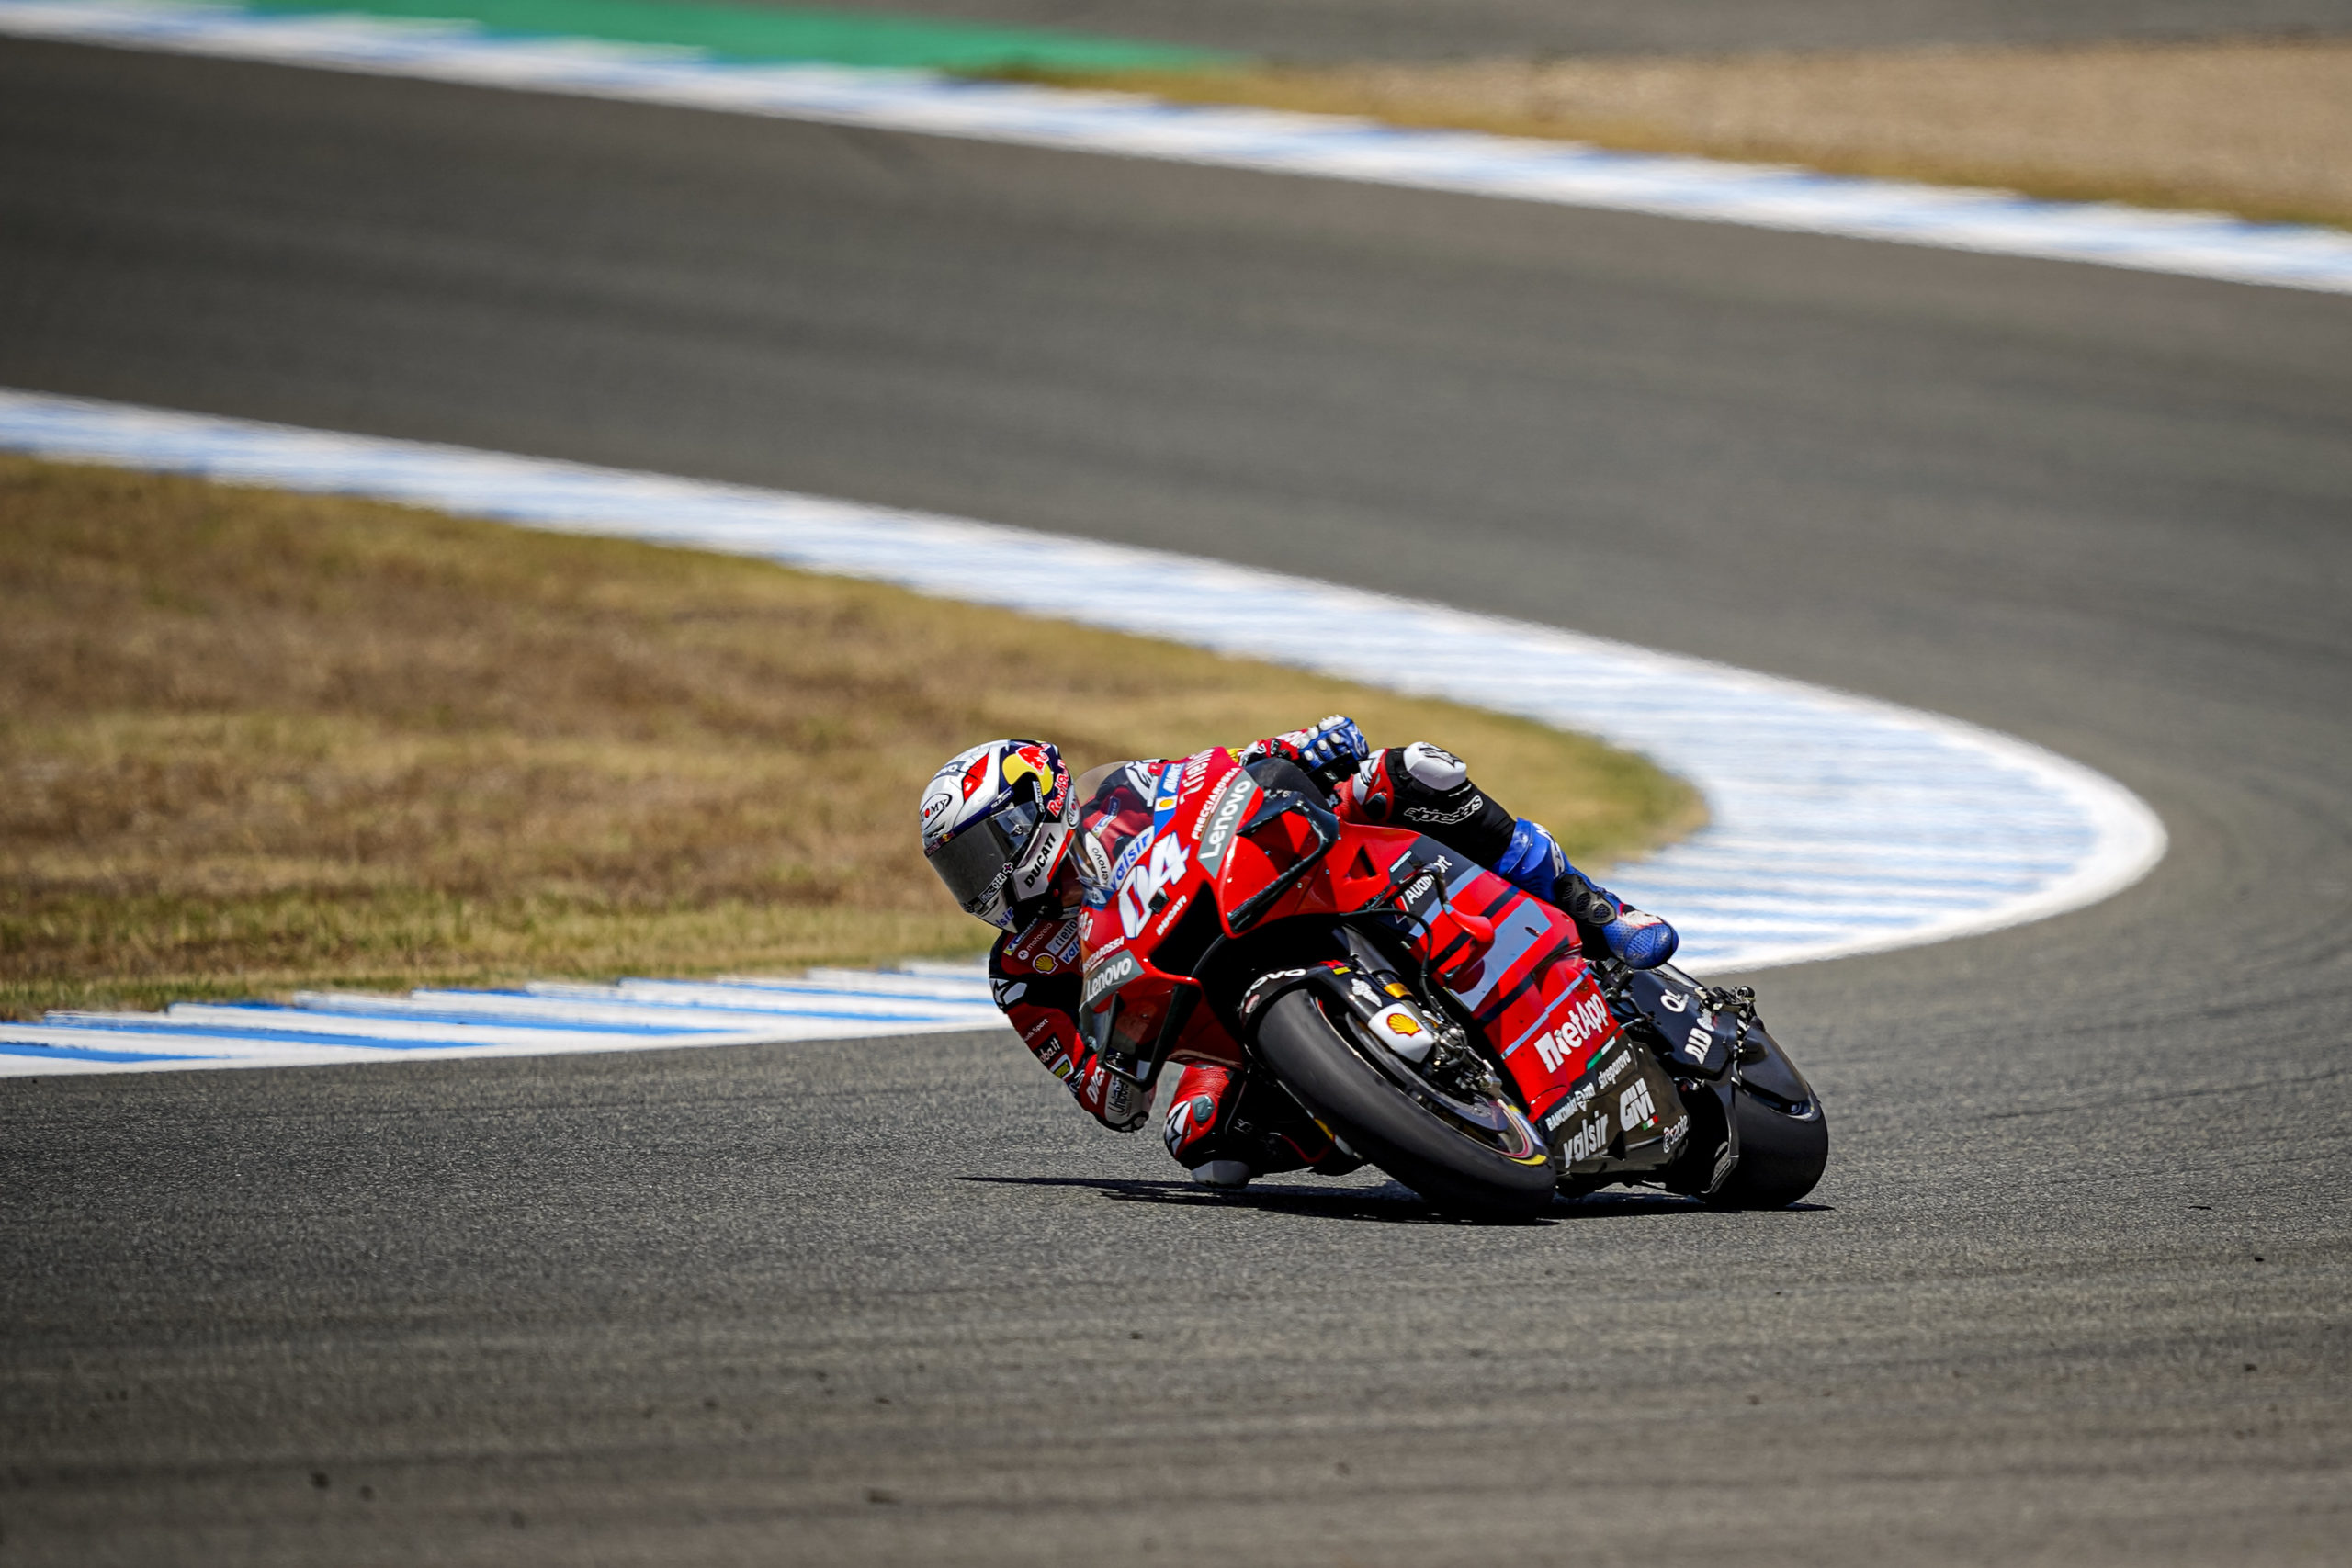 Dovizioso, a deserved third place